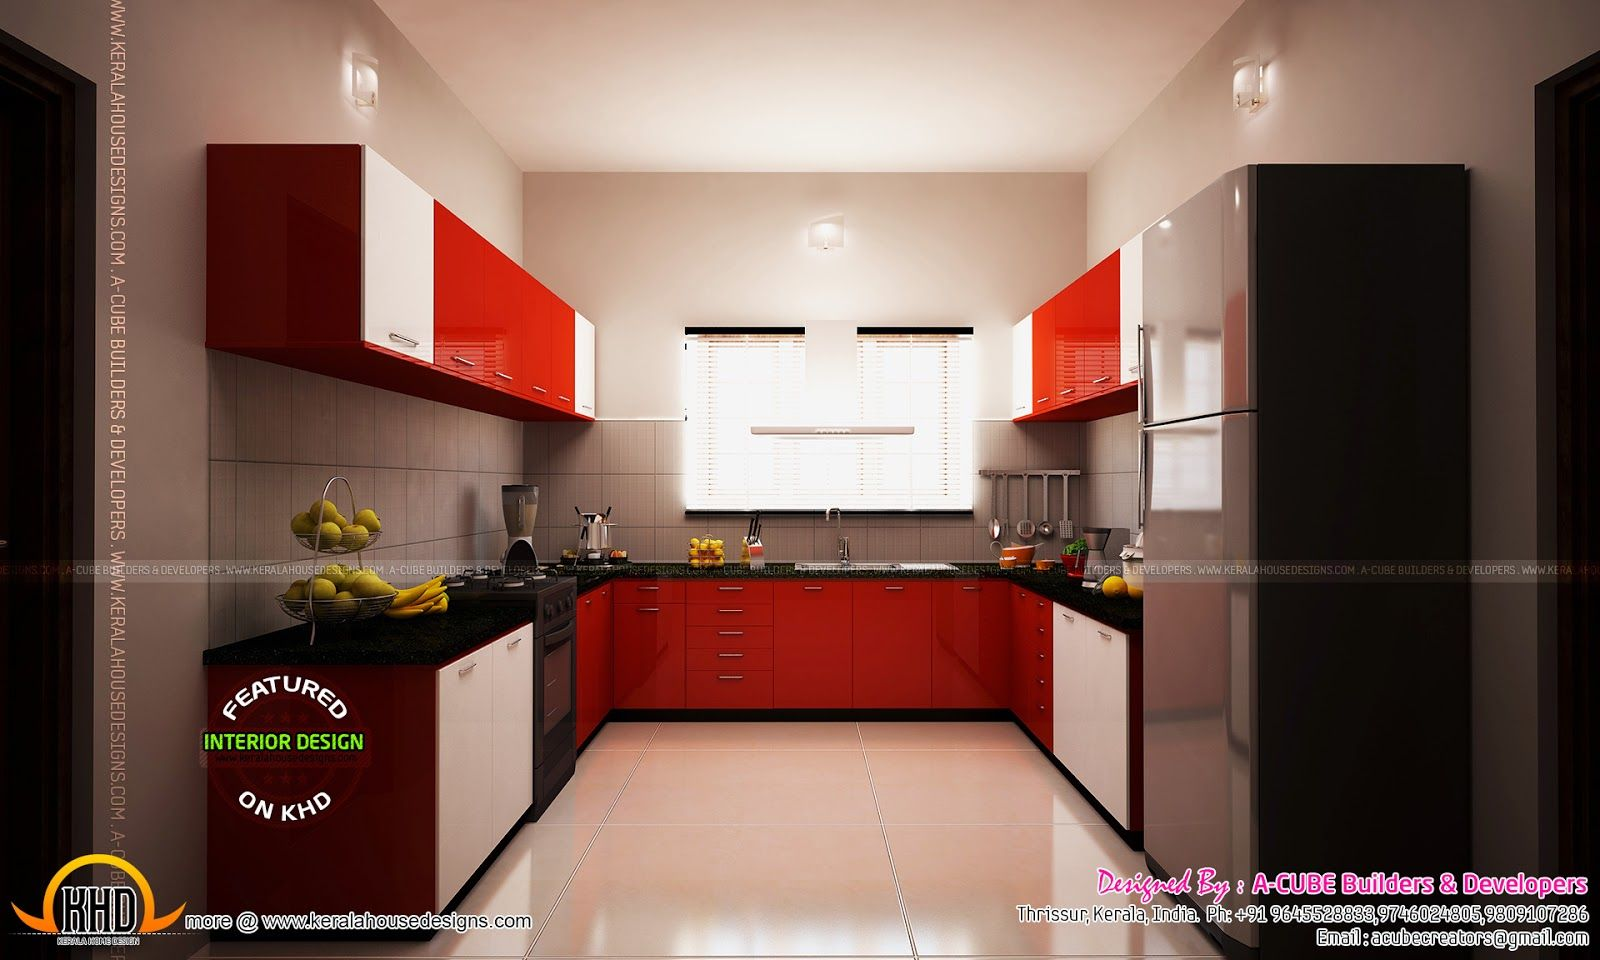 kerala kitchen interior design modular kitchen kerala kerala kitchen ...